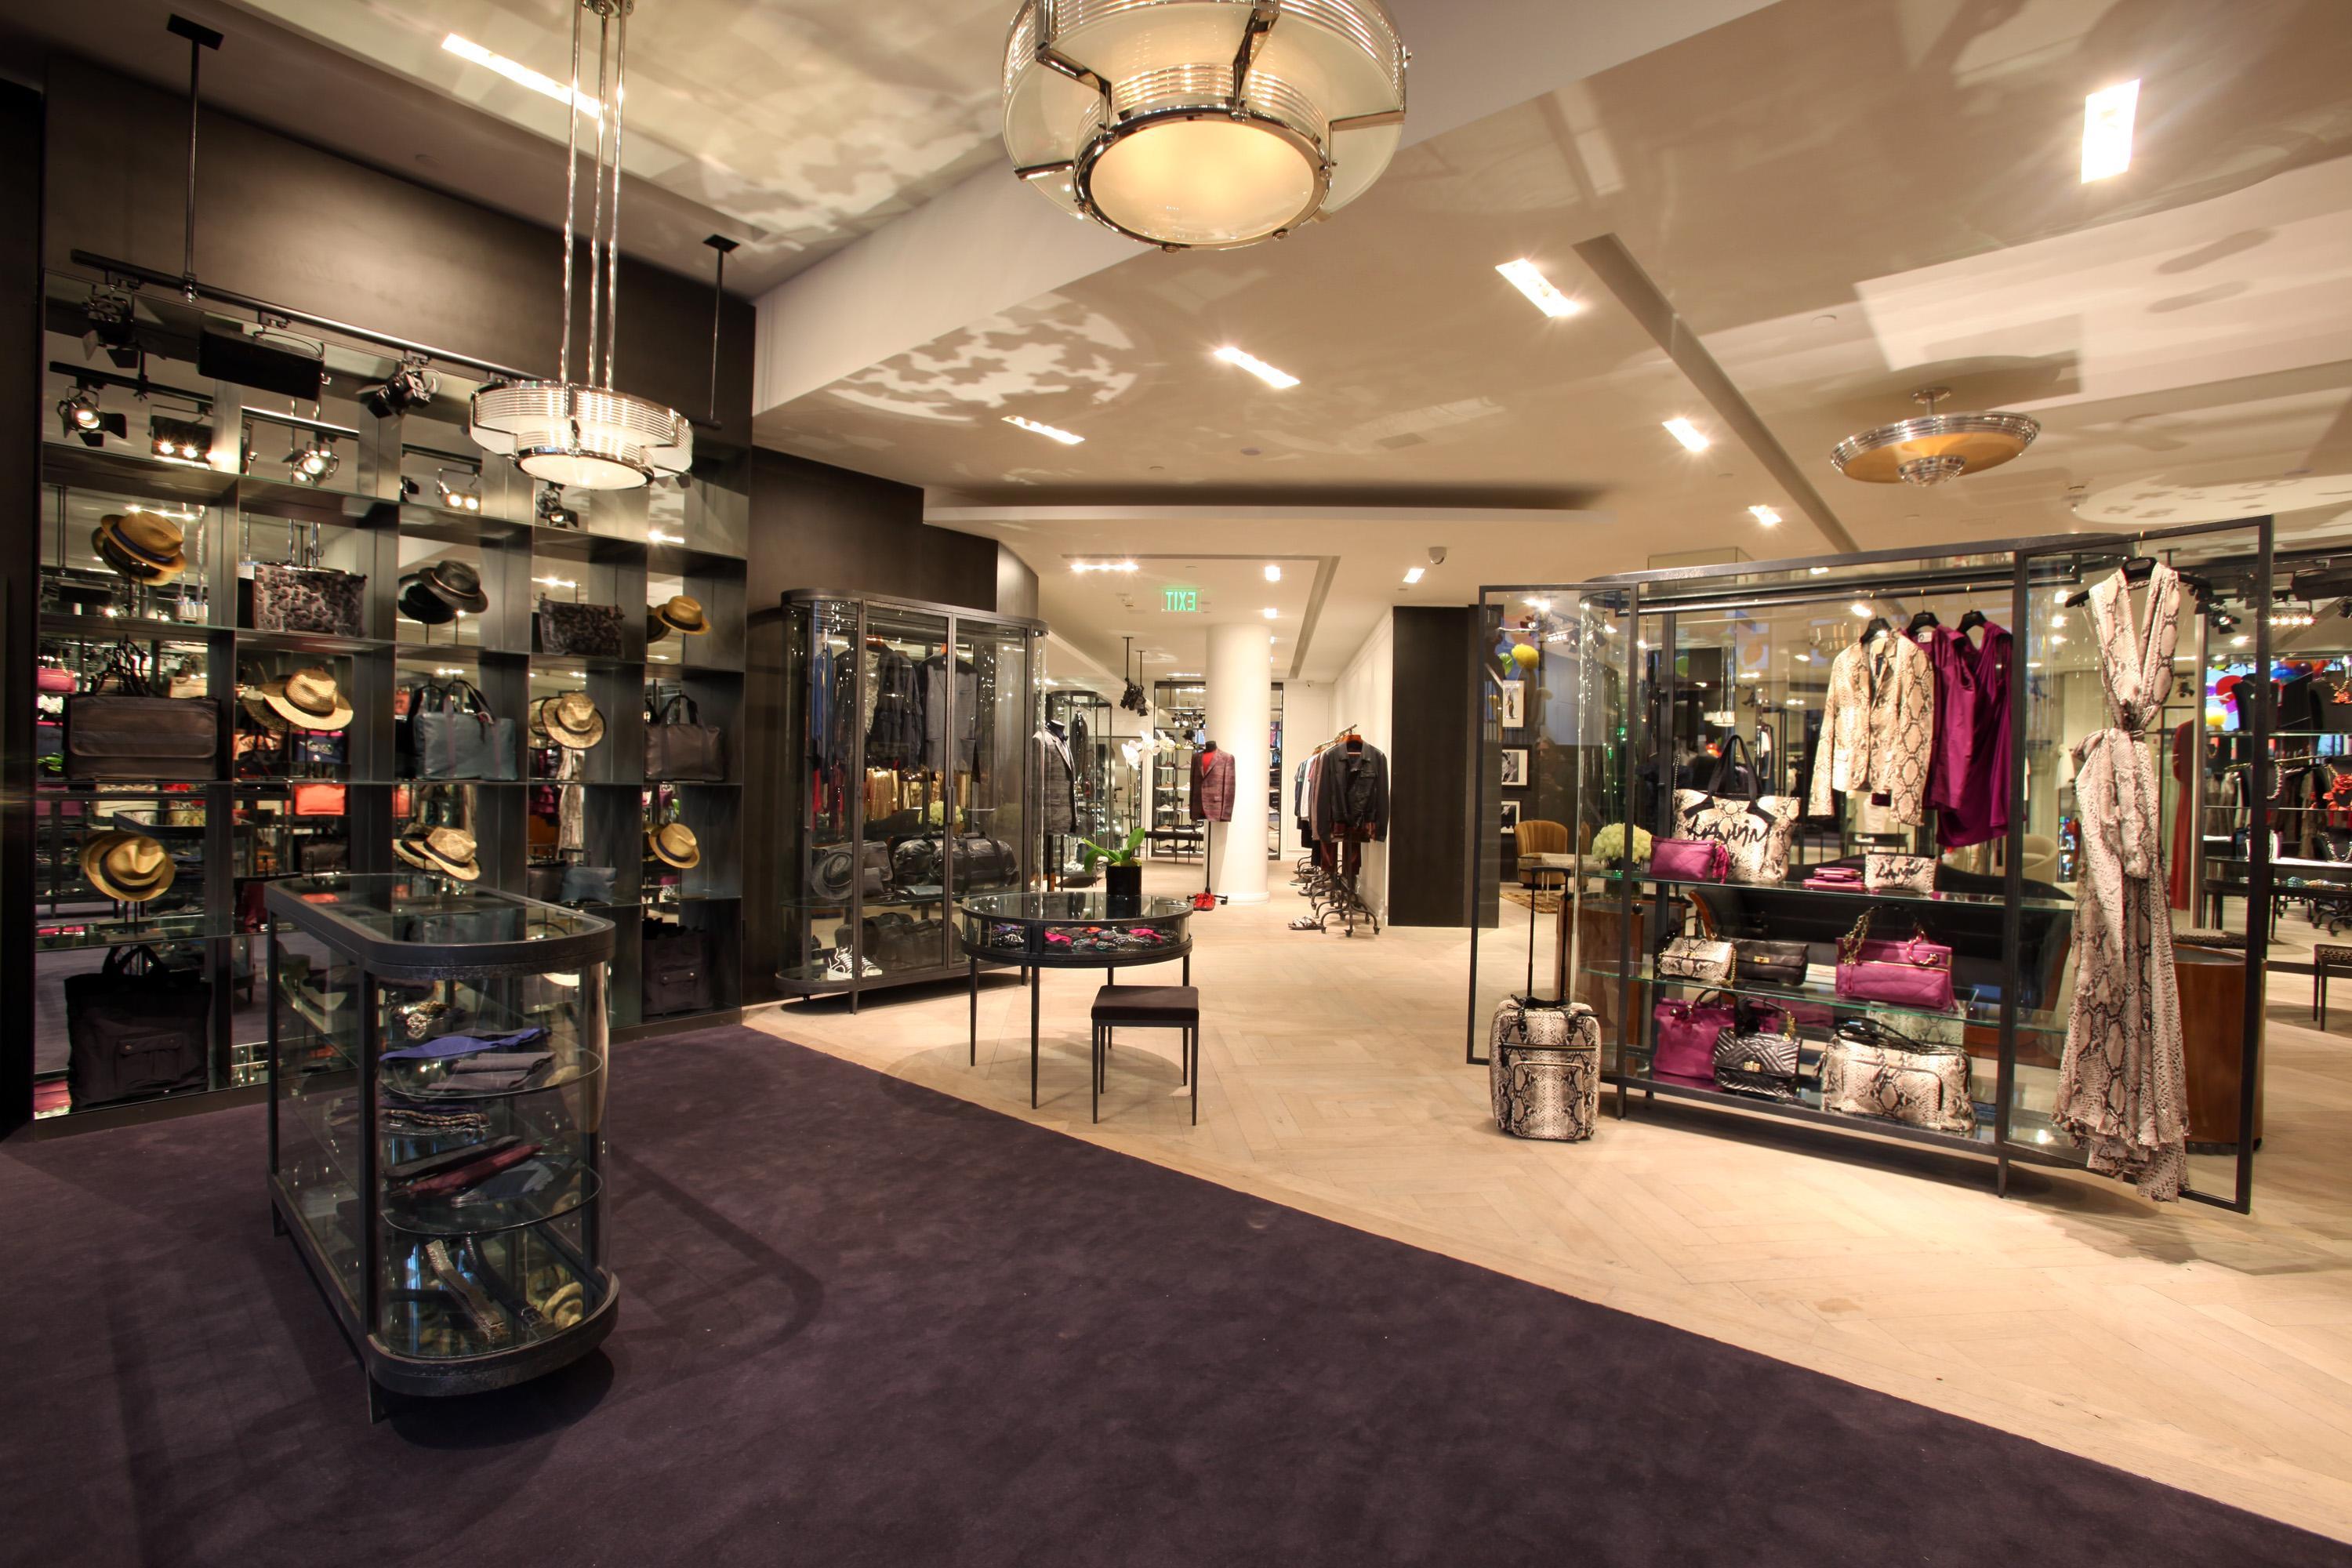 Lanvin (French:) is a French Lanvin opened their first US boutique in Bal Harbour, Florida. In , Lanvin sales reached € million, not counting an estimated € million in revenues from licences. On November 20, , Lanvin became the official tailor of Arsenal FC, a London-based football club.